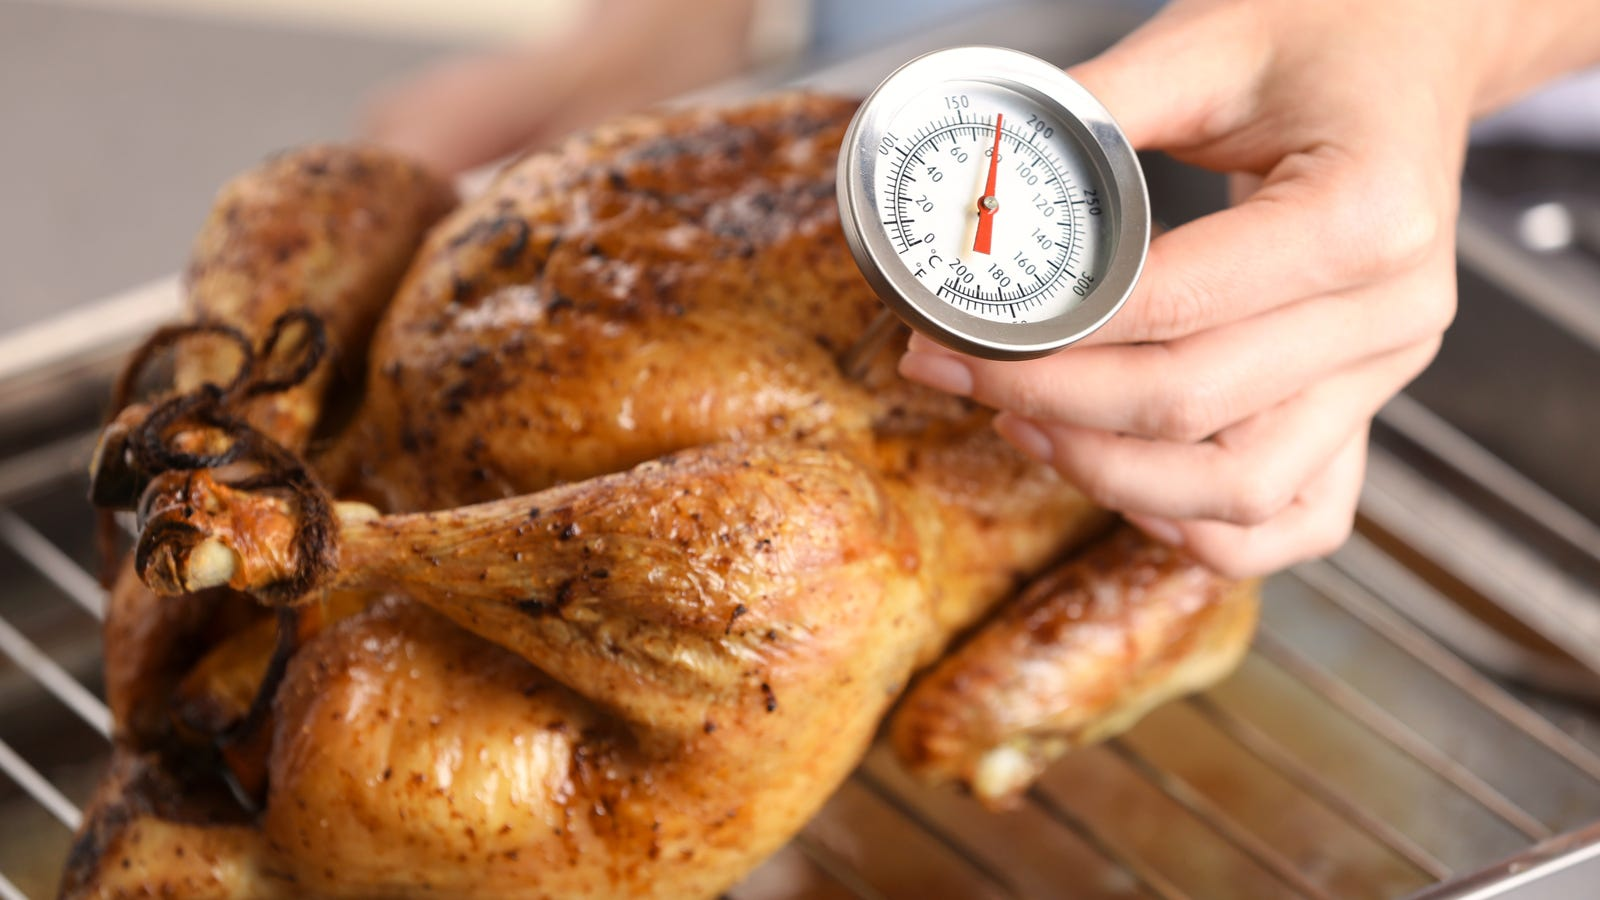 A person temping a roasted chicken, using an instant read thermometer.